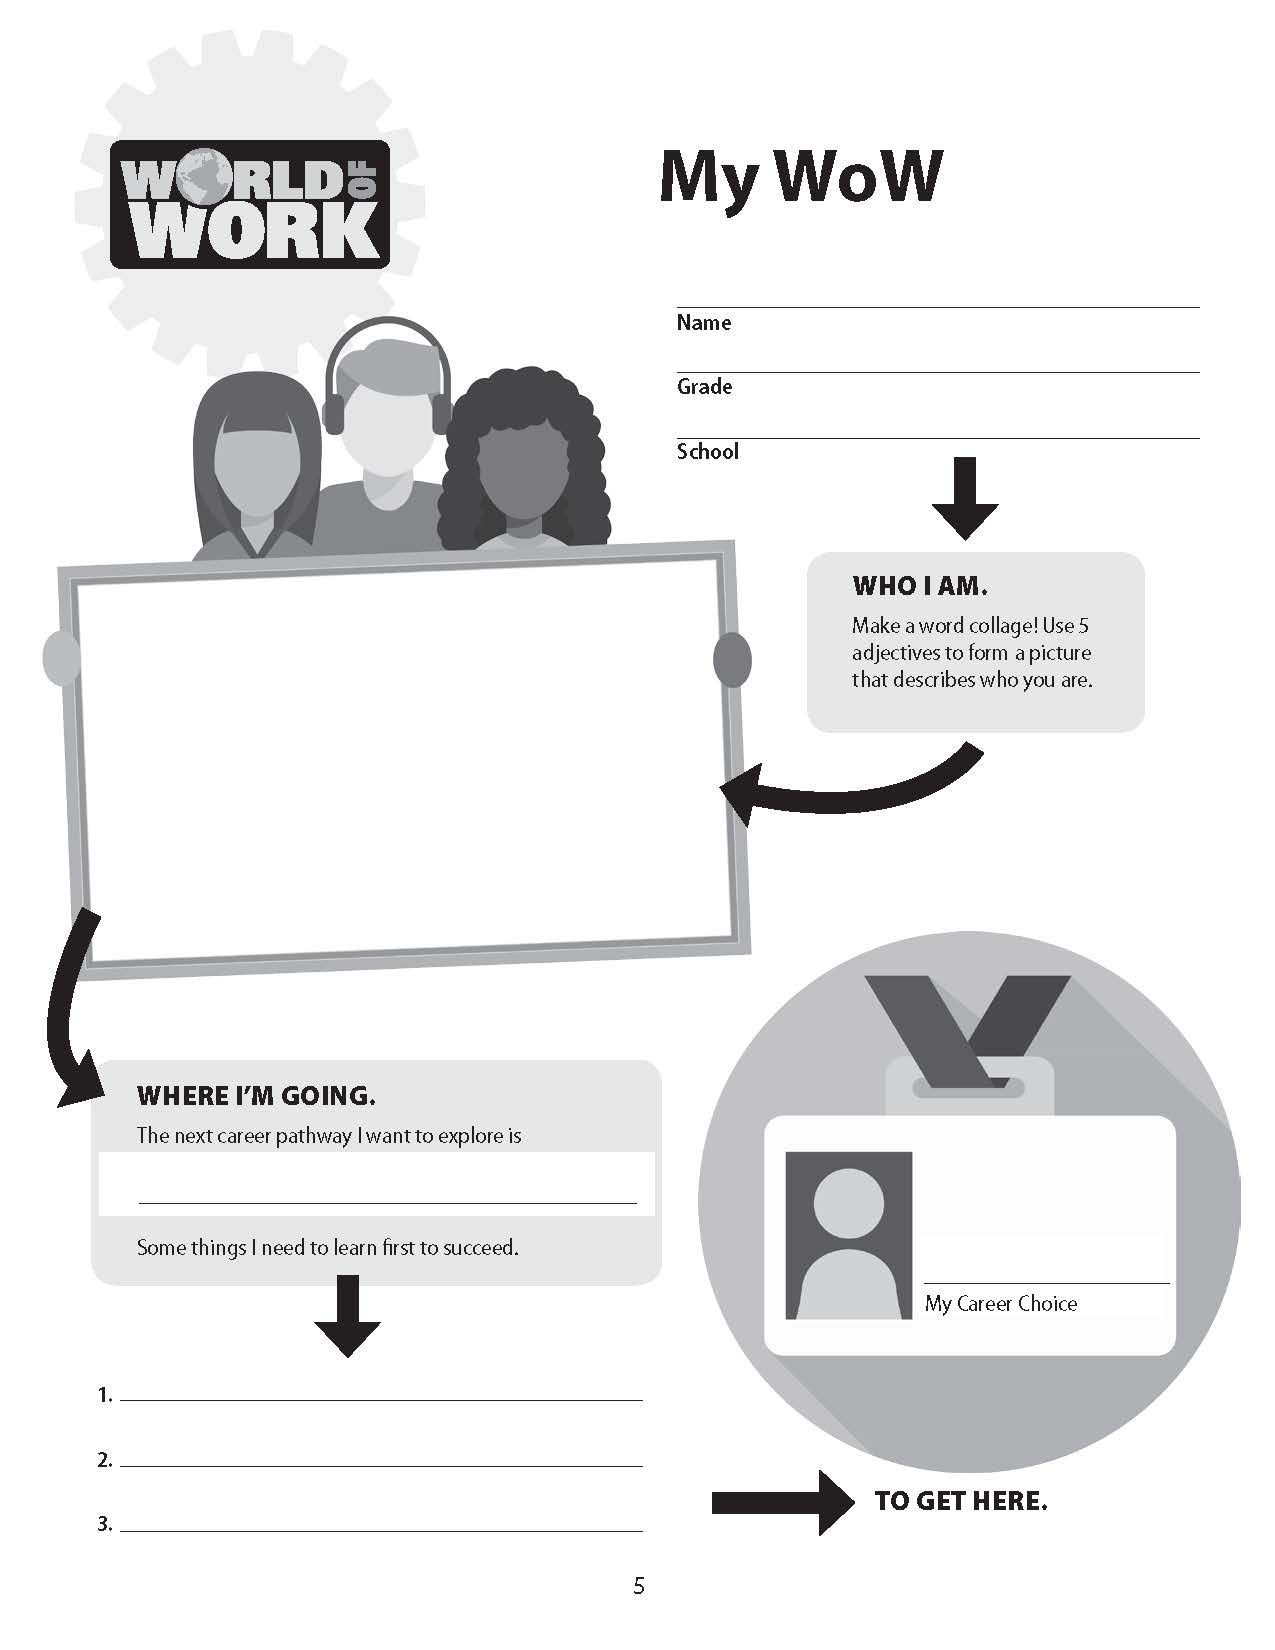 Idea By Bright Futures Press On Hello World Of Work